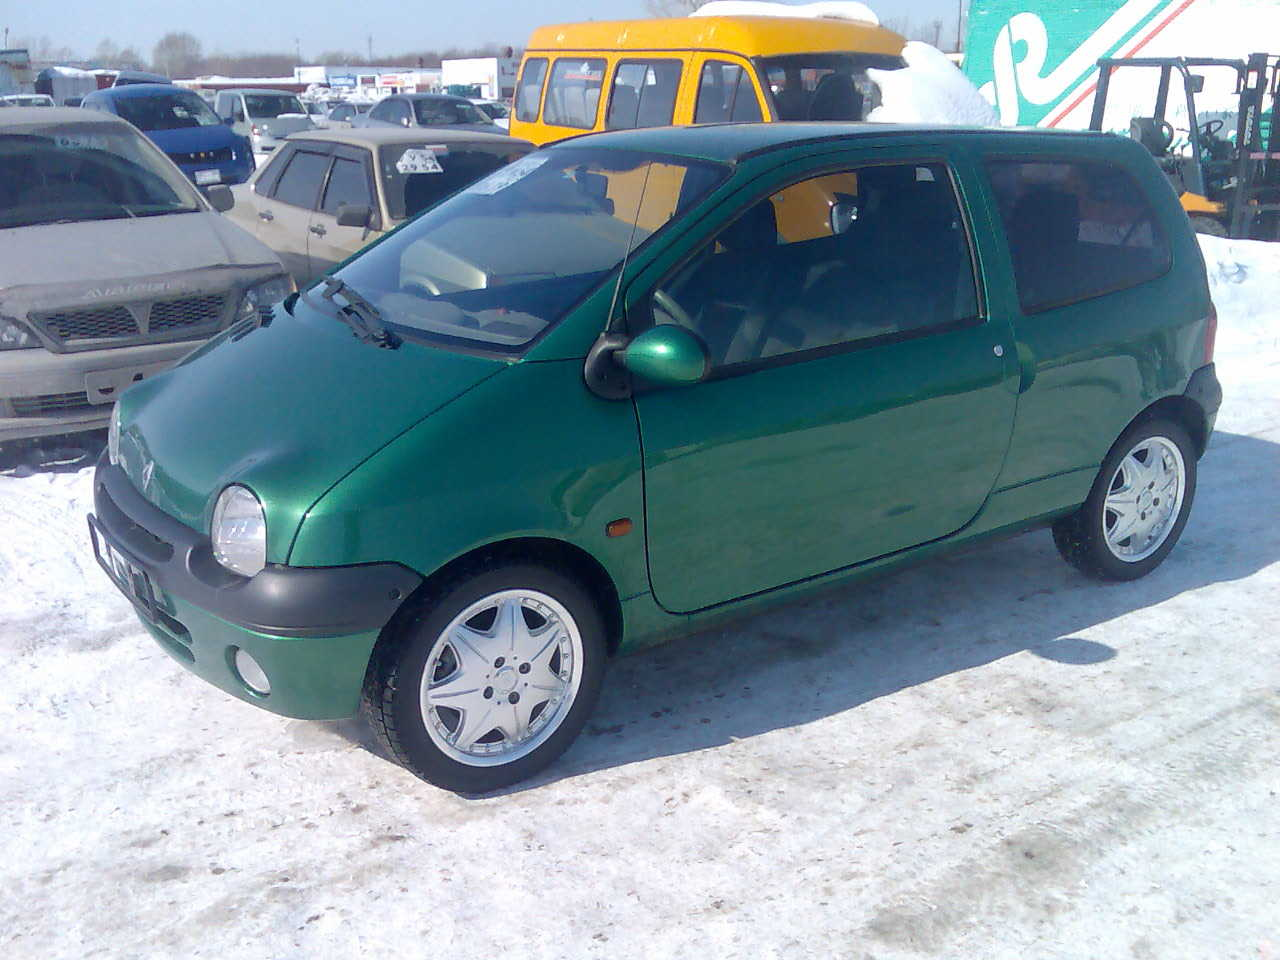 used 2000 renault twingo photos 1 2 gasoline ff manual for sale. Black Bedroom Furniture Sets. Home Design Ideas